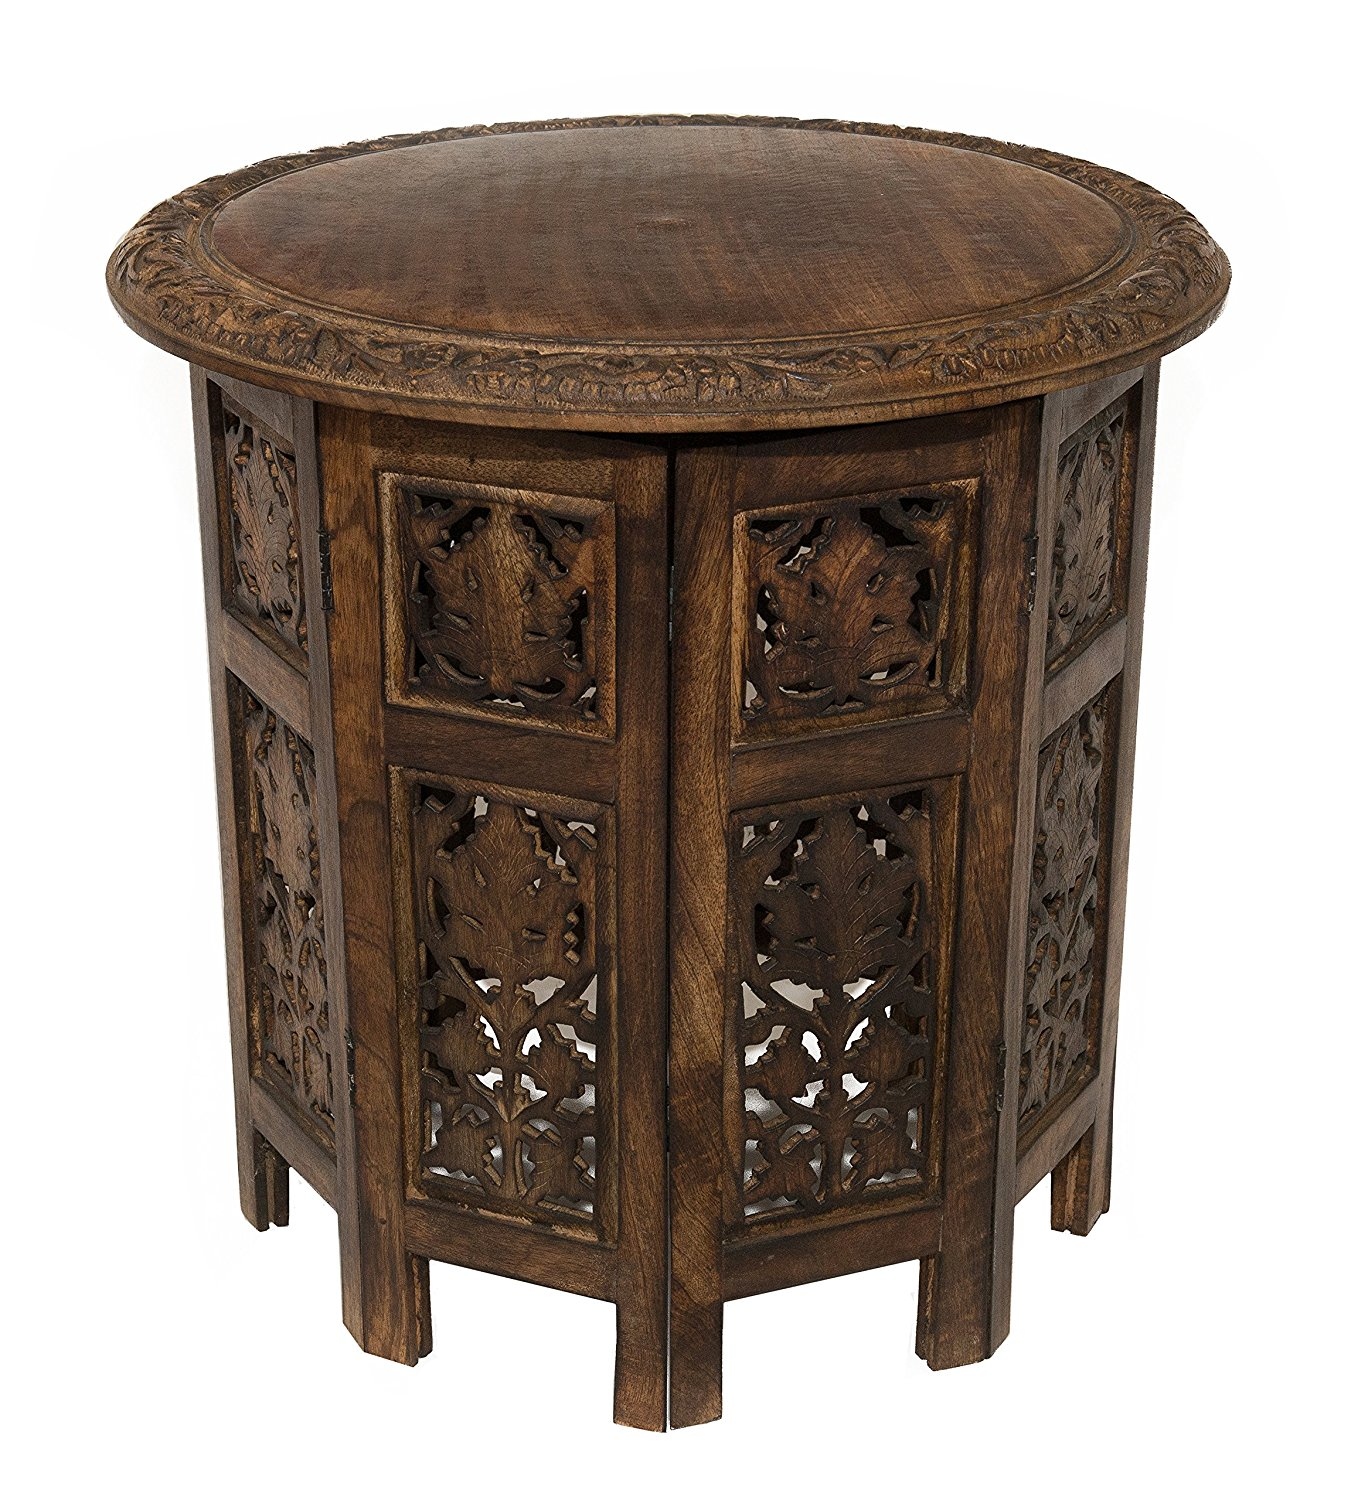 lovely small accent table for ornate antique round wooden west elm side chair unique tables black bedroom target kids furniture farmhouse style dining room drop leaf home